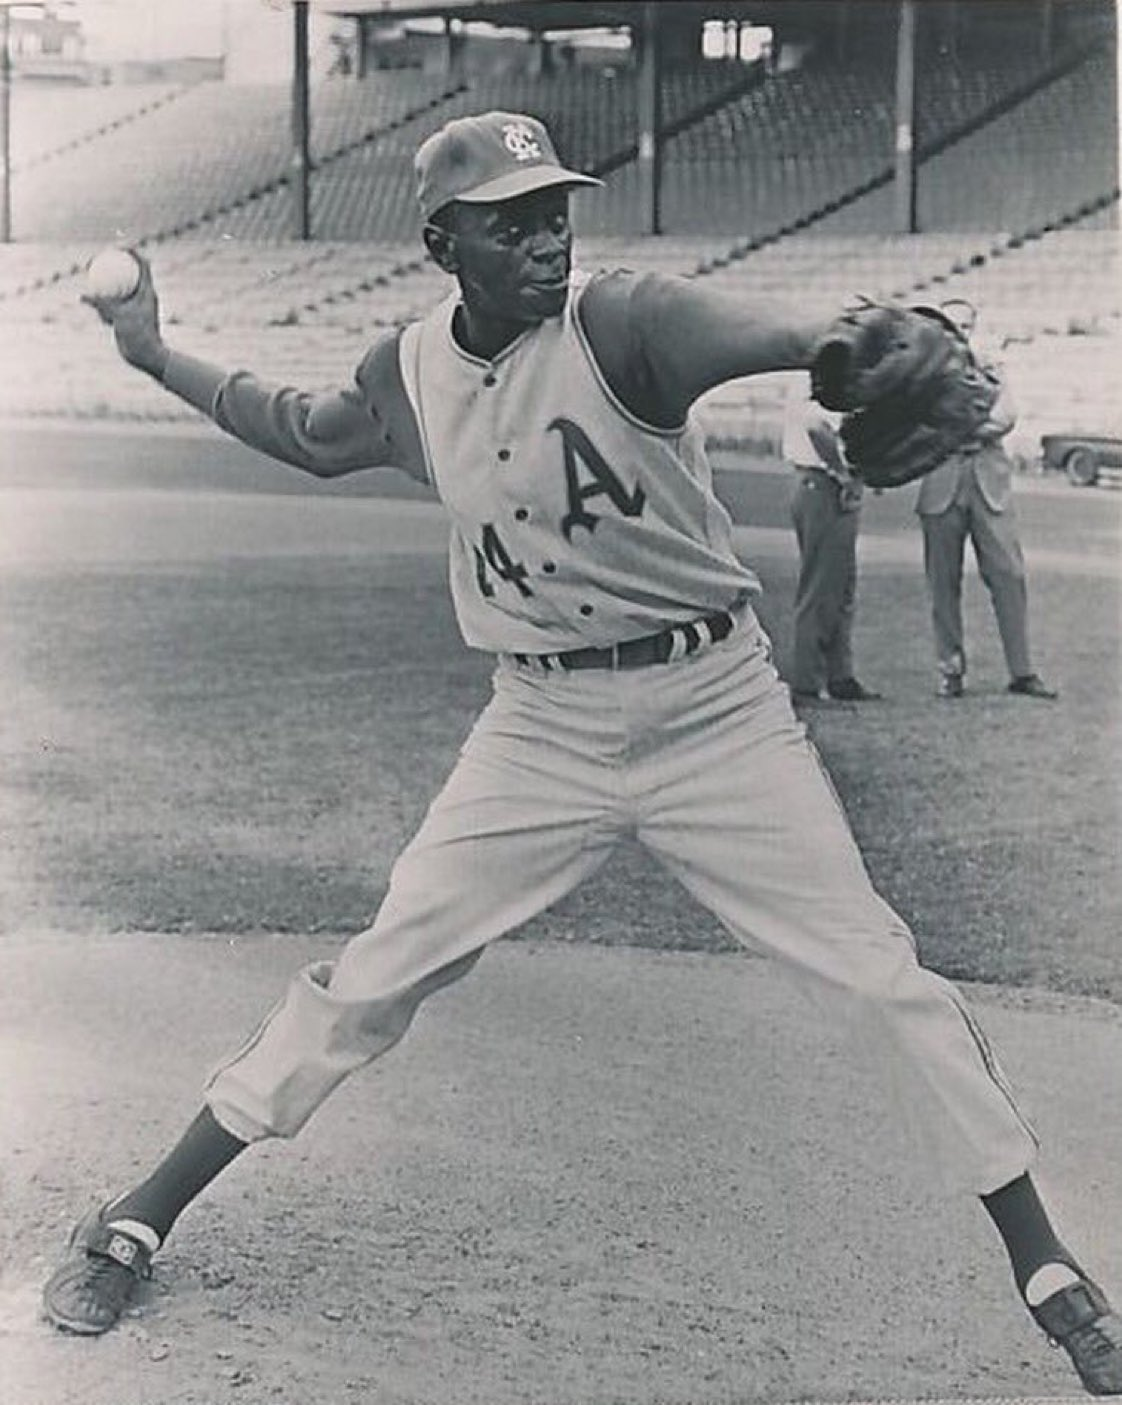 In 1965, 59-year-old Satchel Paige suits up for the A's and tosses three shutout innings. Because Satchel Paige. https://t.co/OoJ8QMbmAH